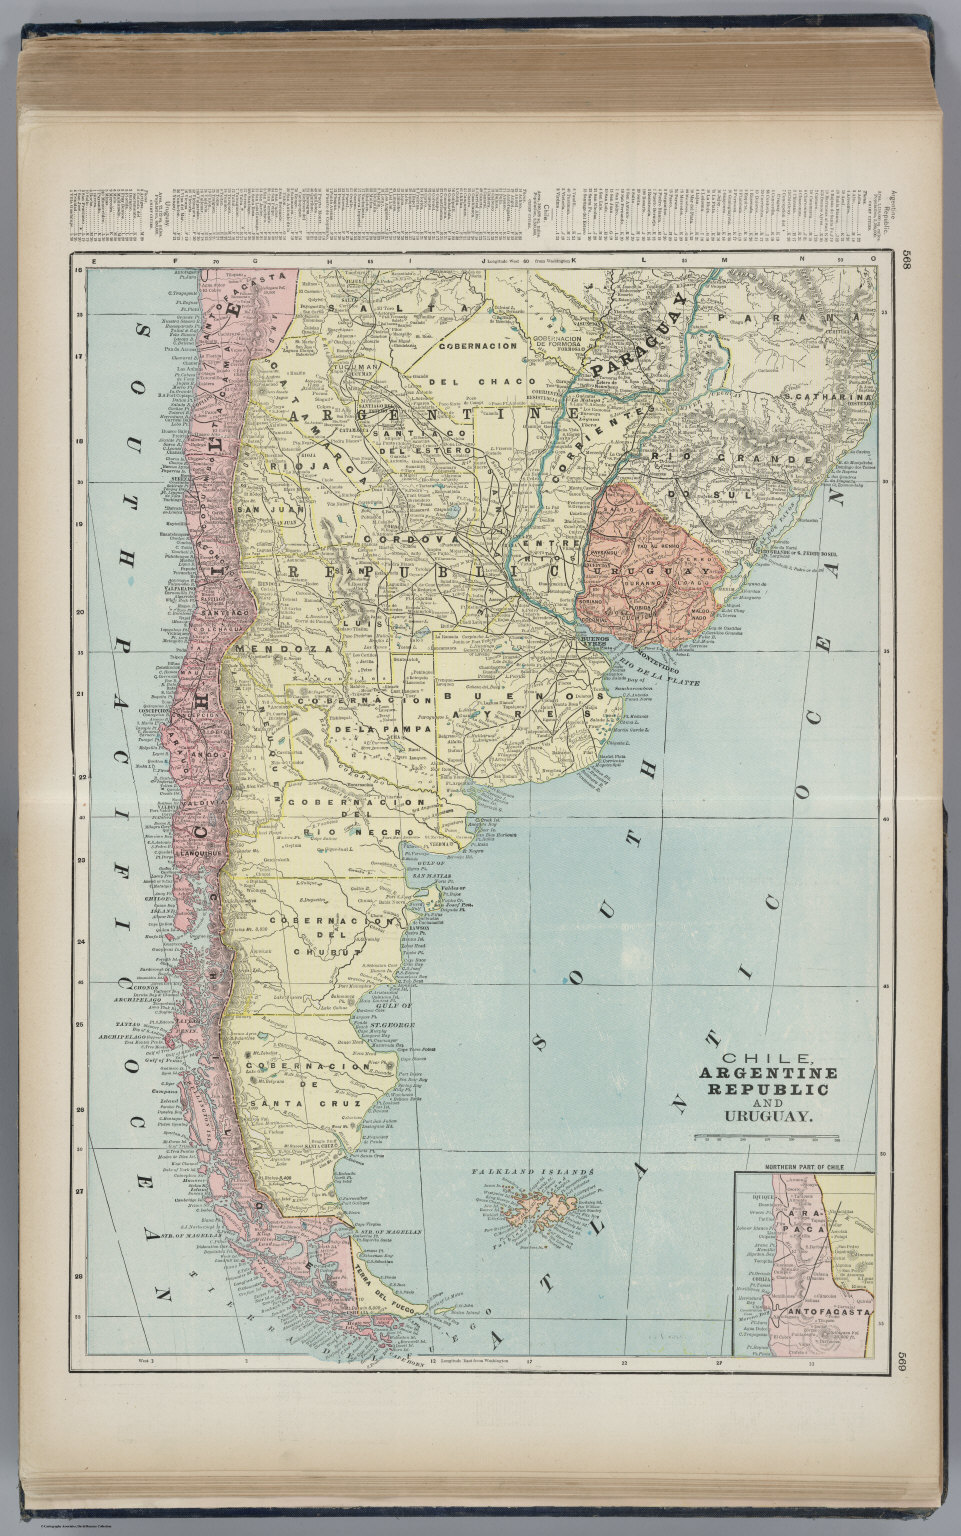 Chile argentine republic and uruguay david rumsey historical map chile argentine republic and uruguay gumiabroncs Gallery